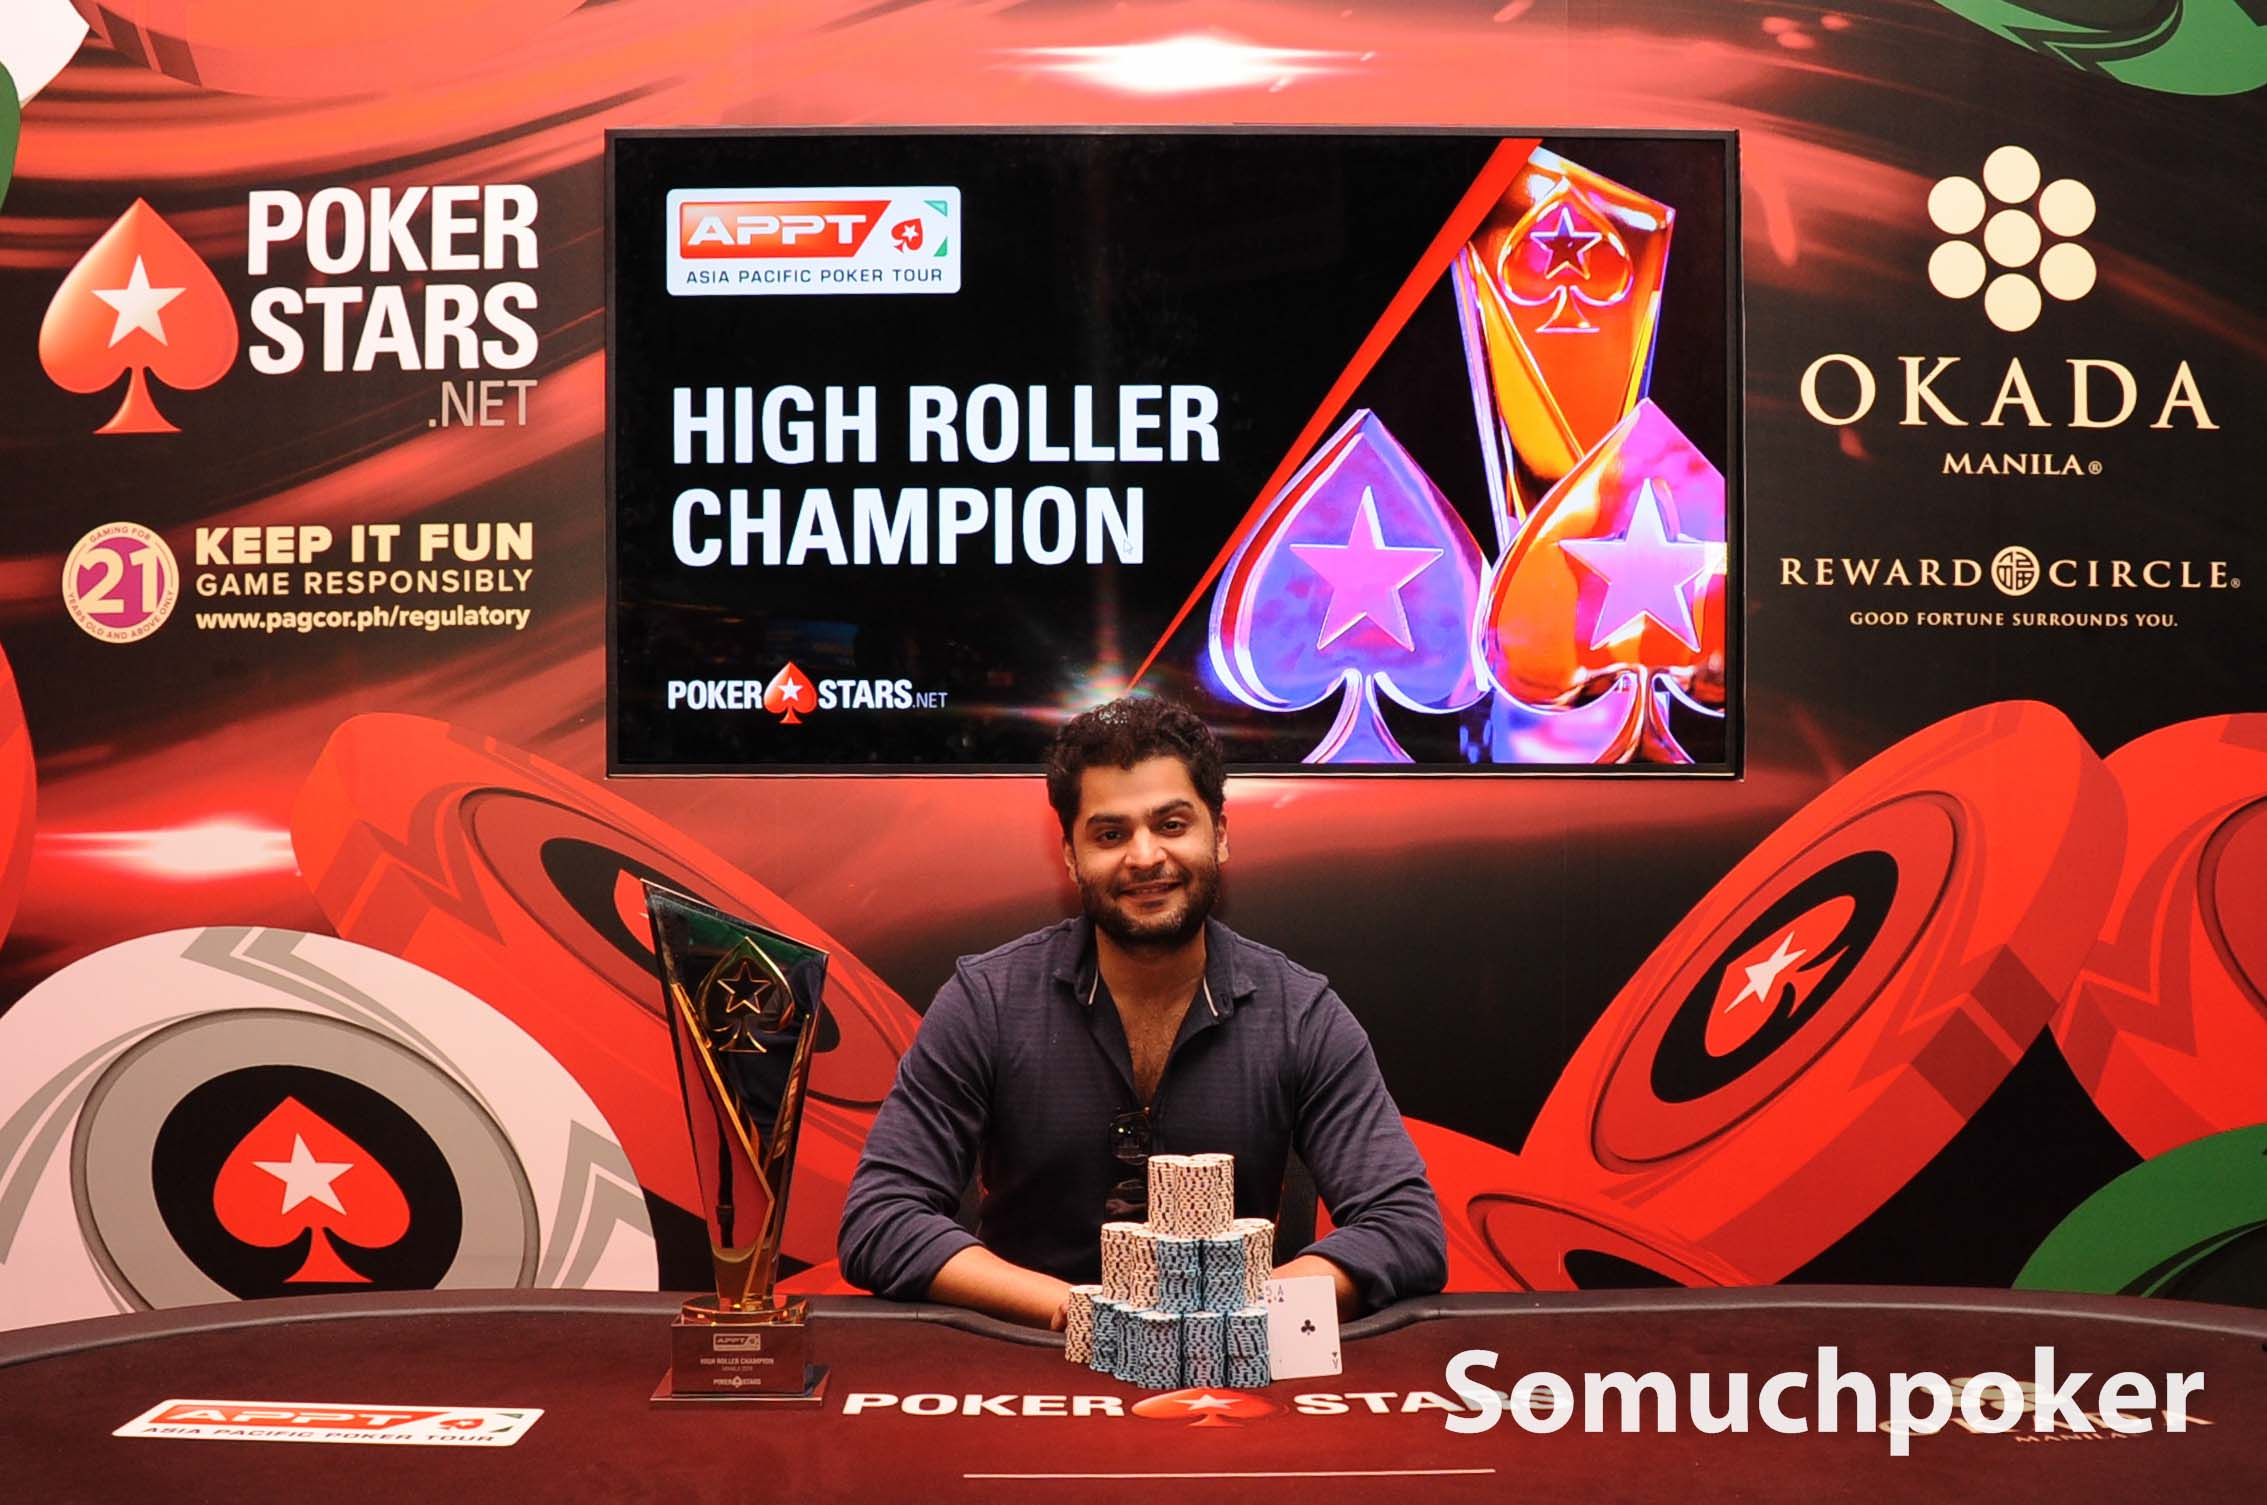 APPT Manila 2019 amasses a grand US$4M in prizes; Kanishka Samant wins High Roller